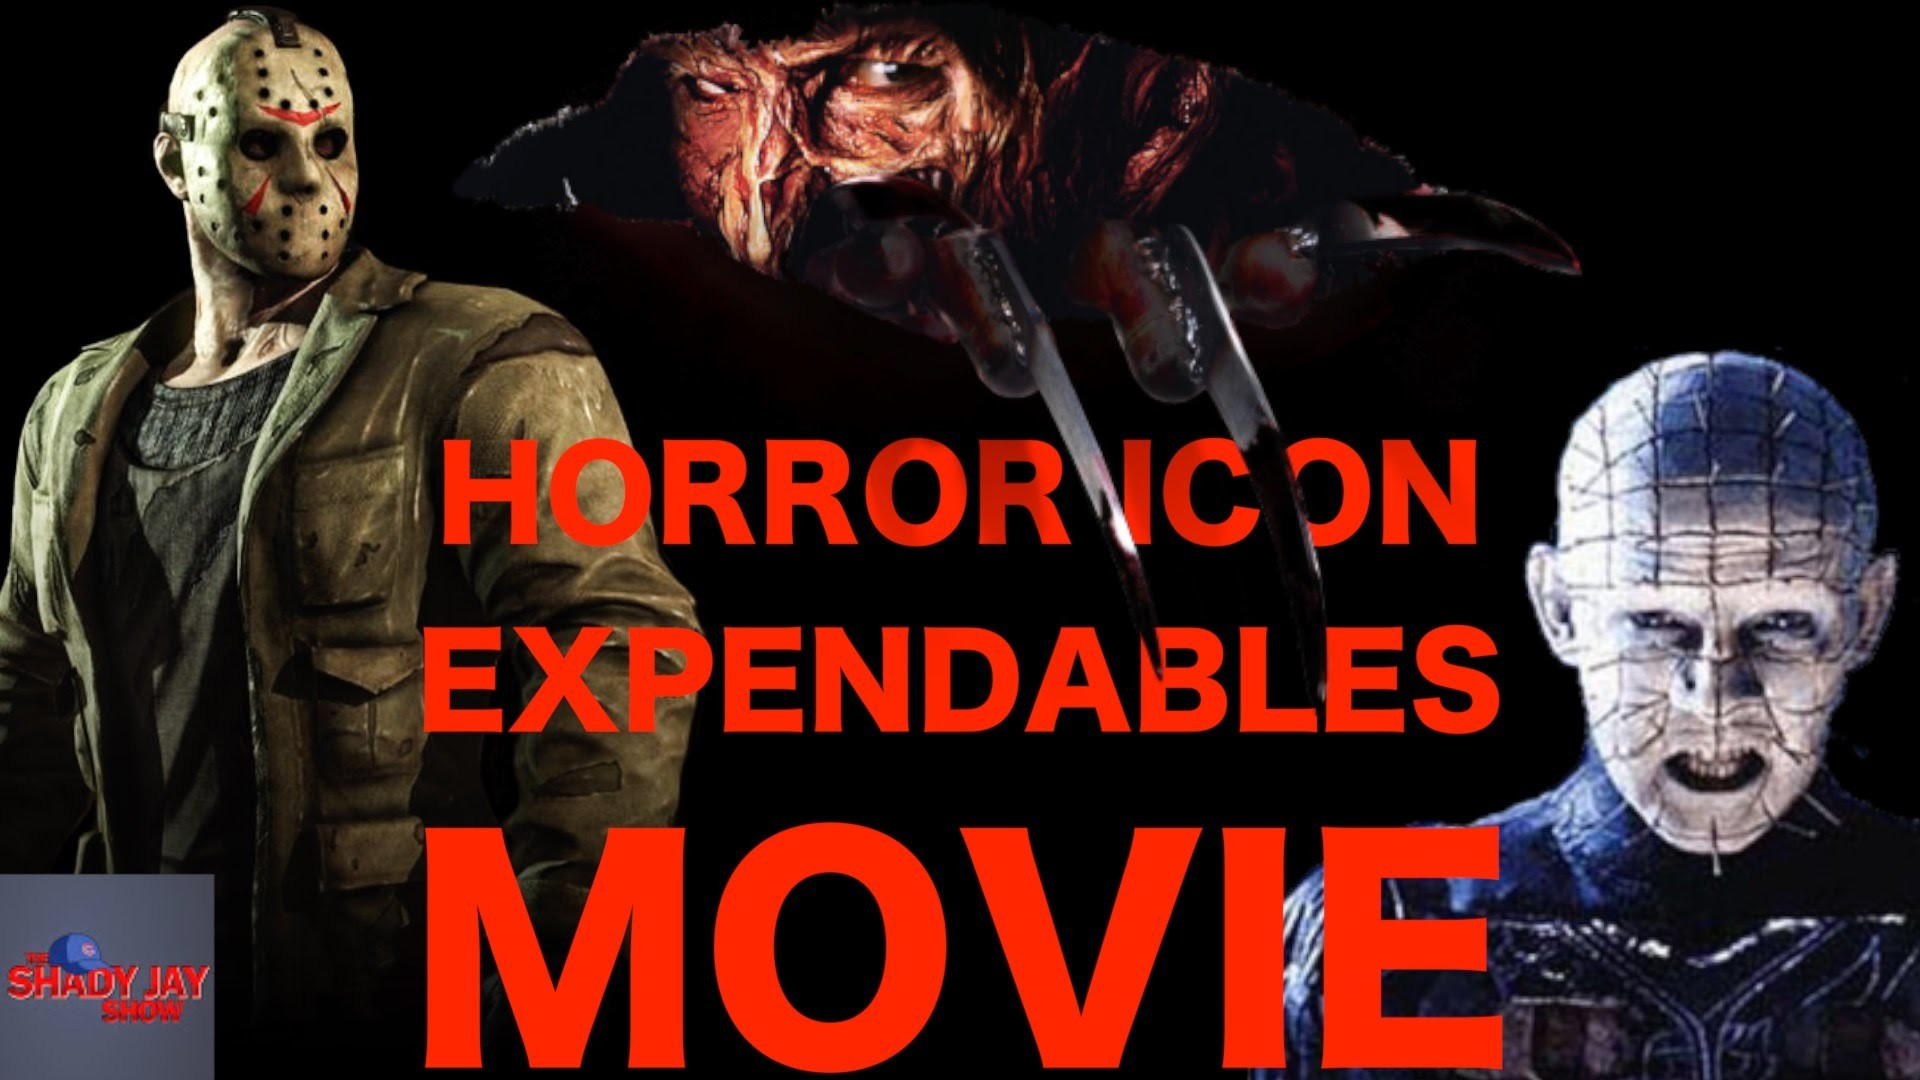 HORROR ICON EXPENDABLES MOVIE?!